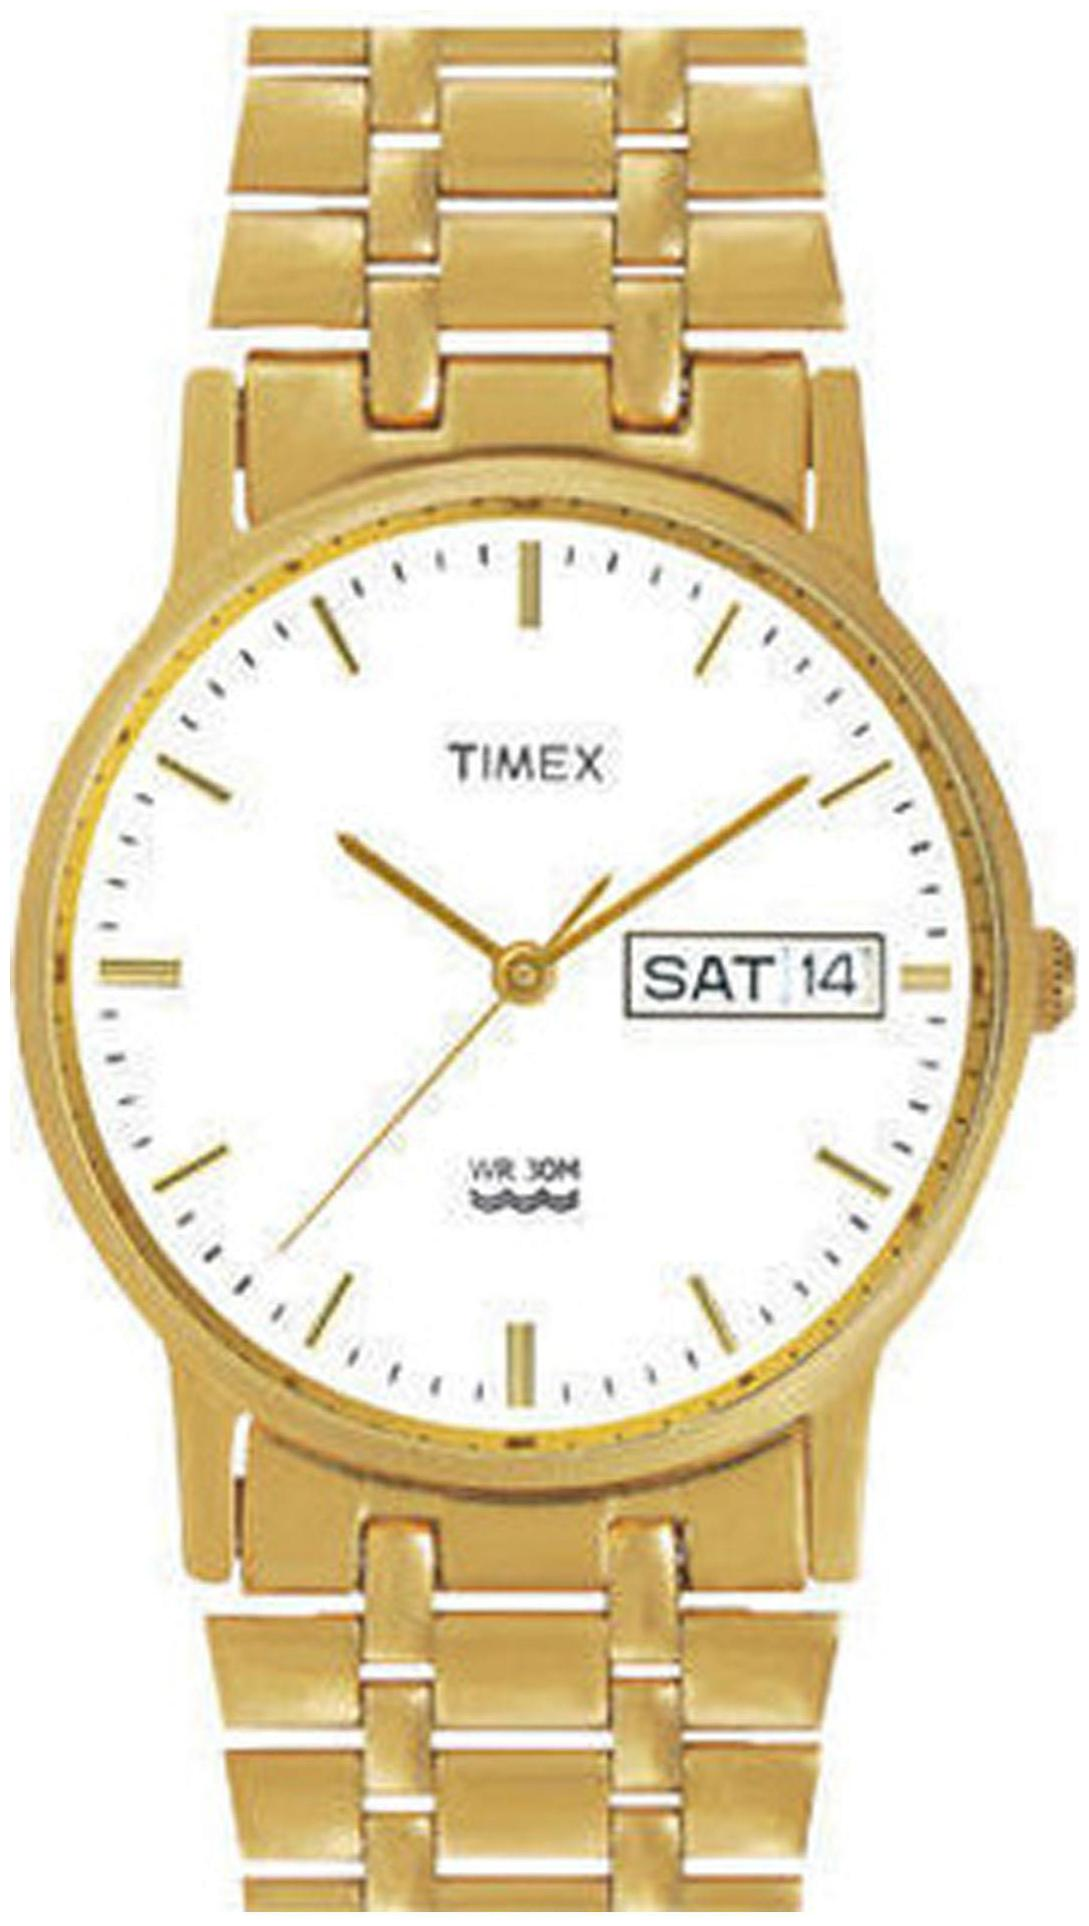 Timex  A503 Men Analog Watches